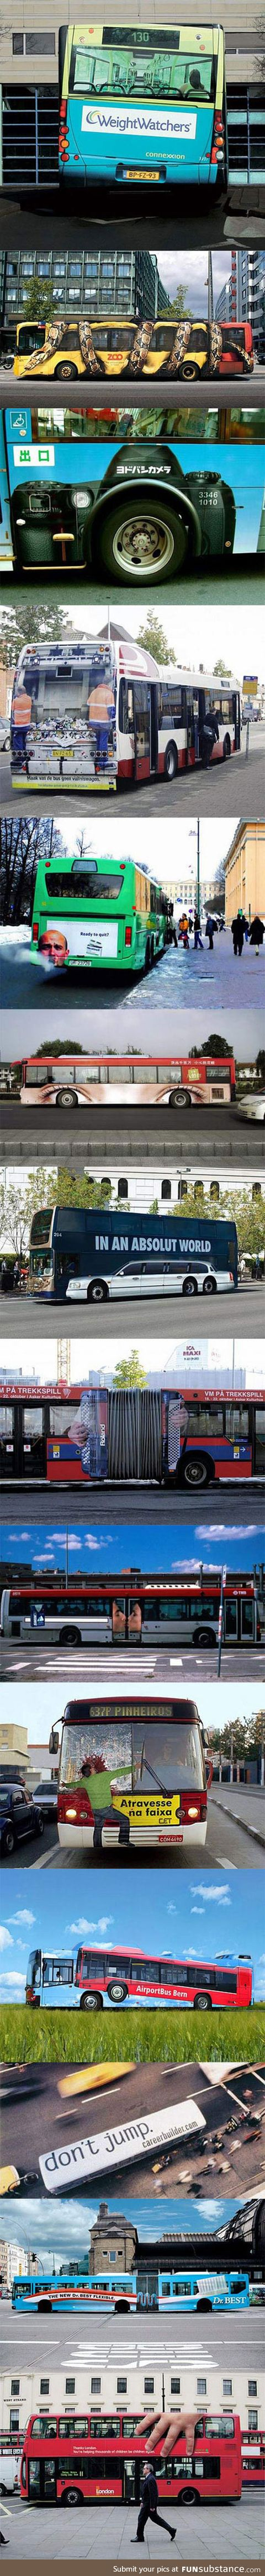 When buses get creative